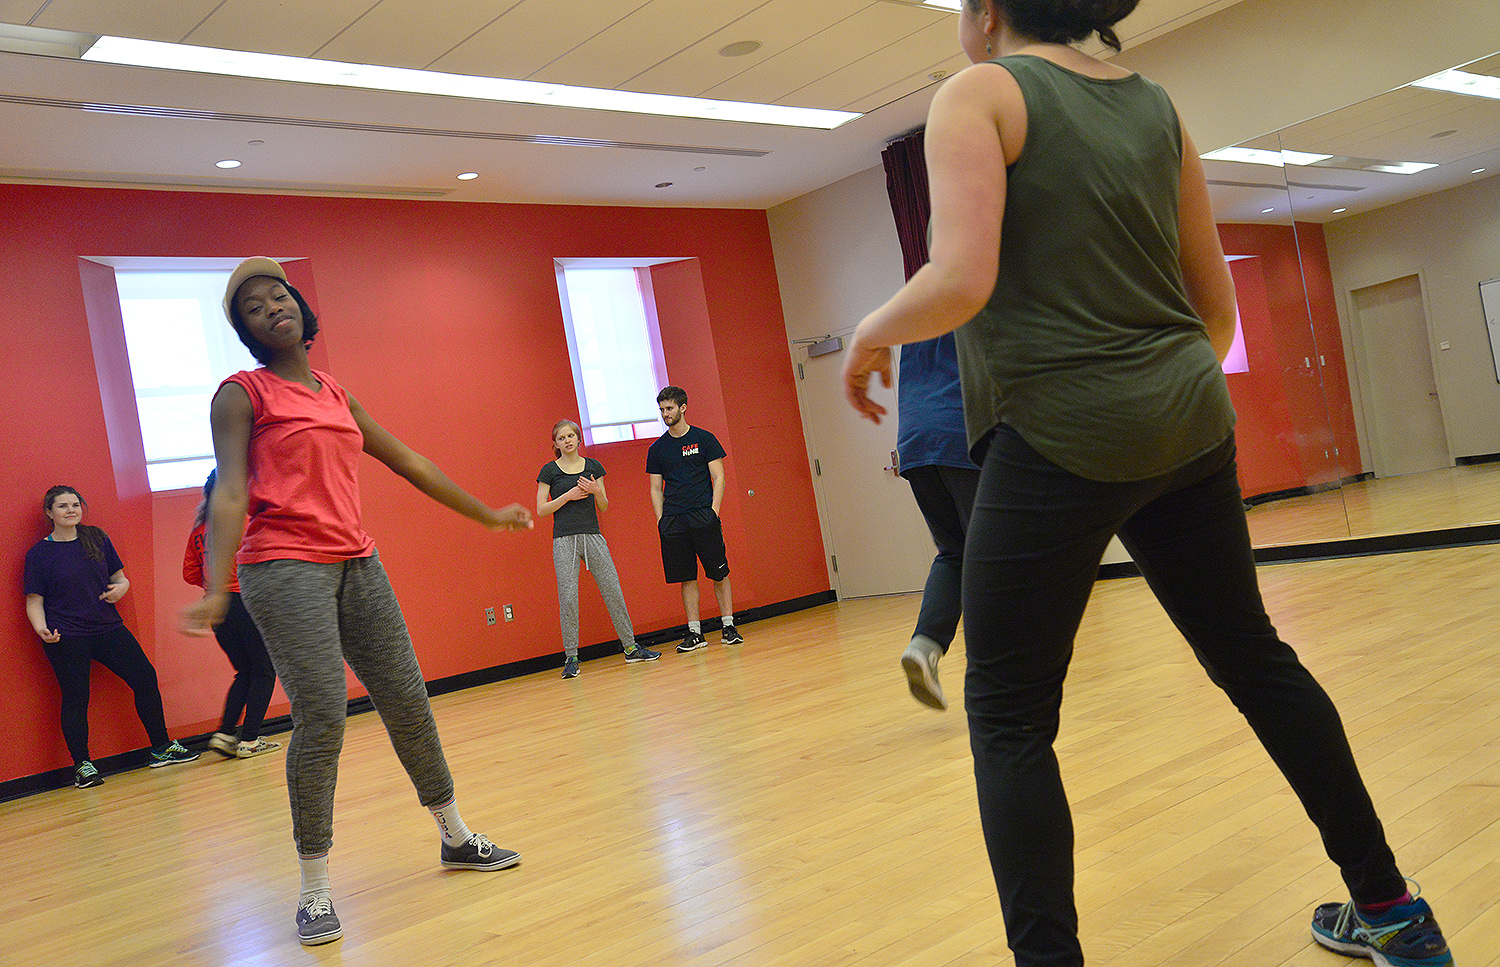 The Milk & Choreo student group provides the greater Wesleyan community with an open space to learn and practice urban dancing, with a positive and encouraging community of individuals who do not necessarily have dance experience. The group met on Feb. 18 in the Fayweather dance studio.